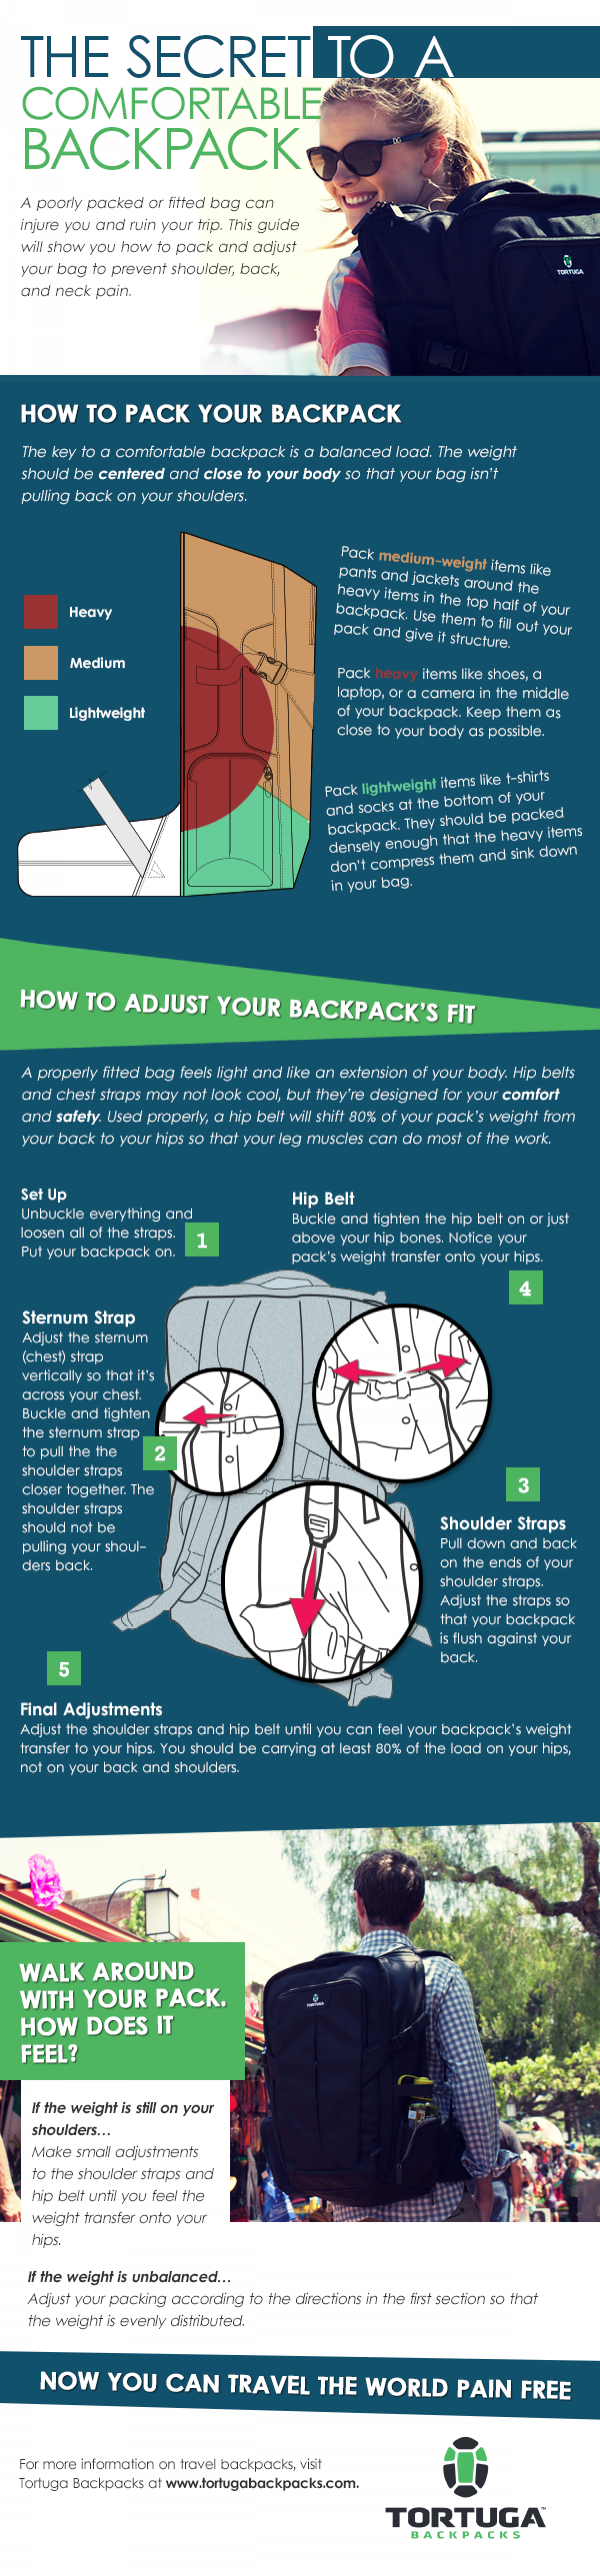 The Secret to a Comfortable Backpack Infographic